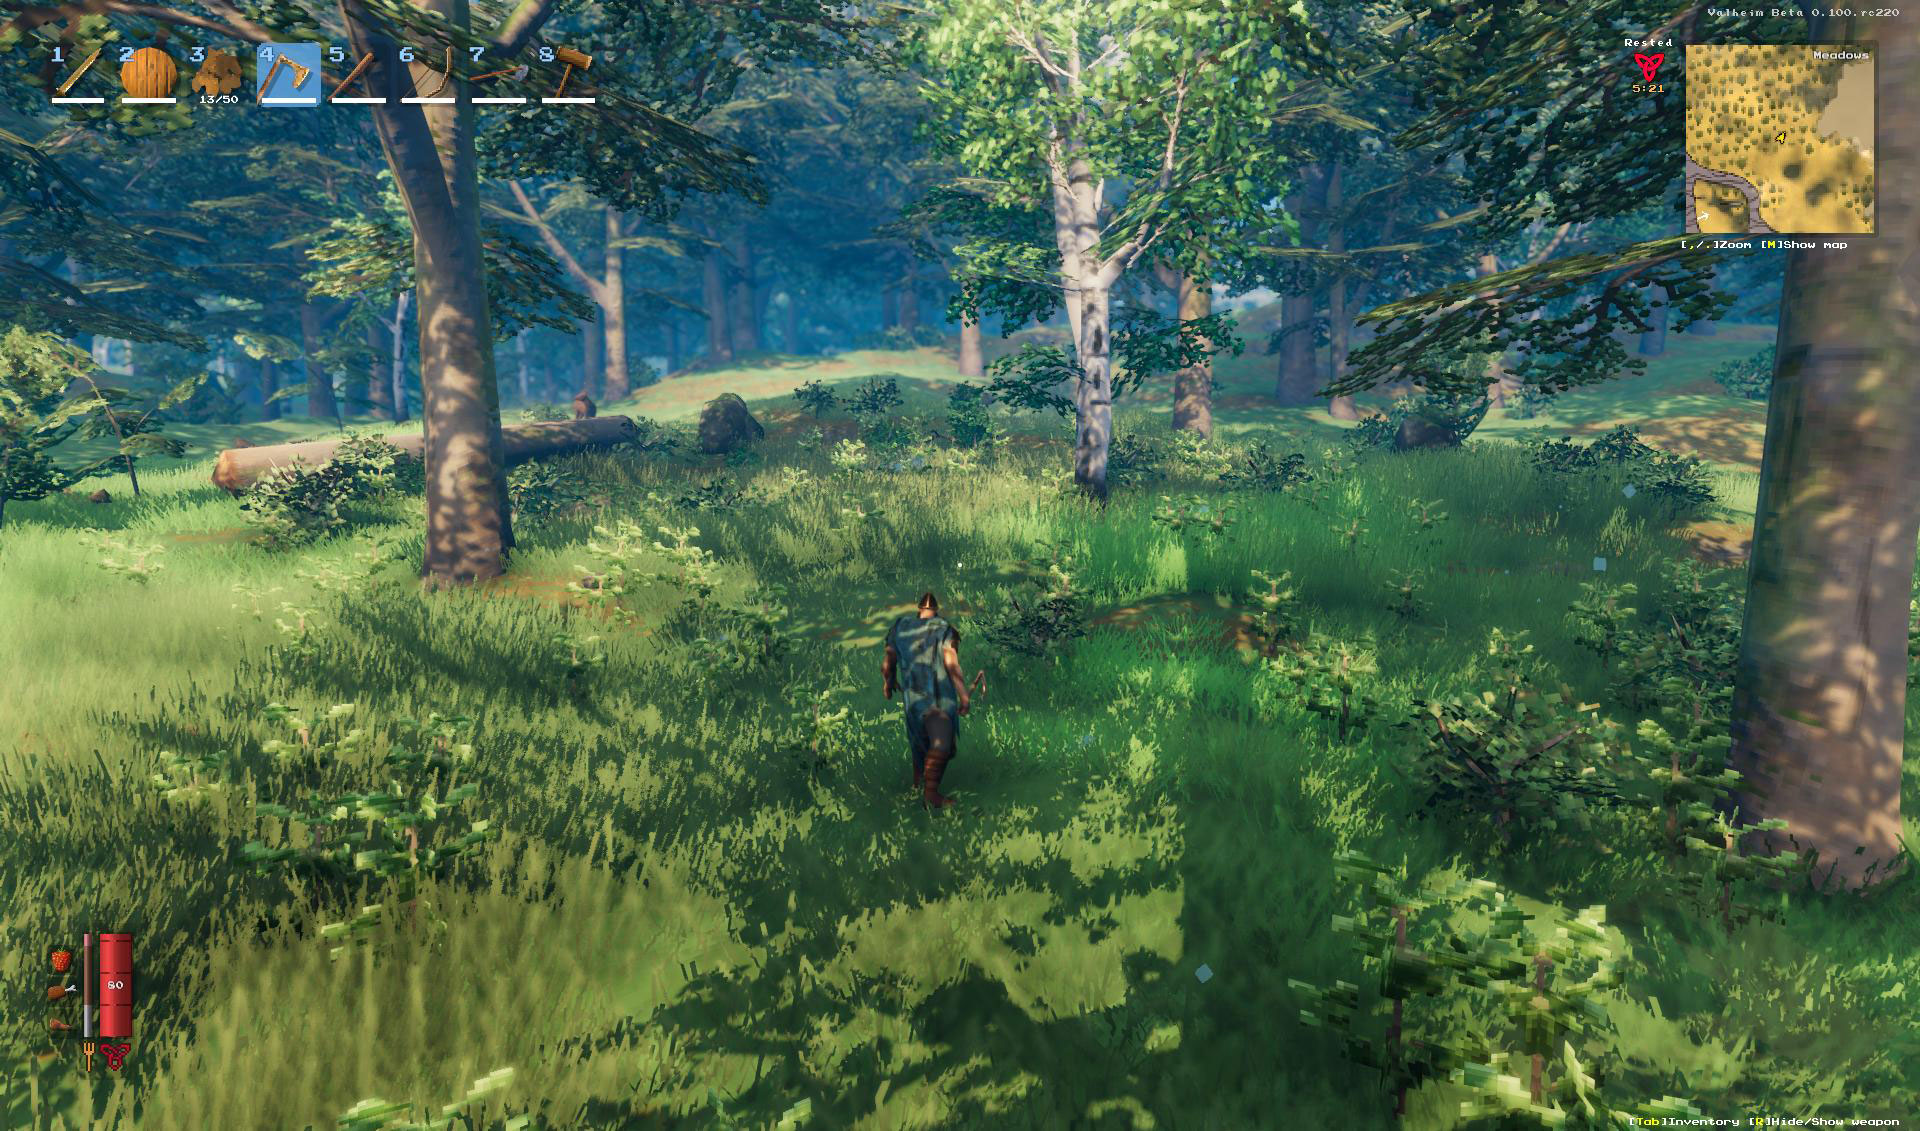 How important is light in a video game? The Valheim case